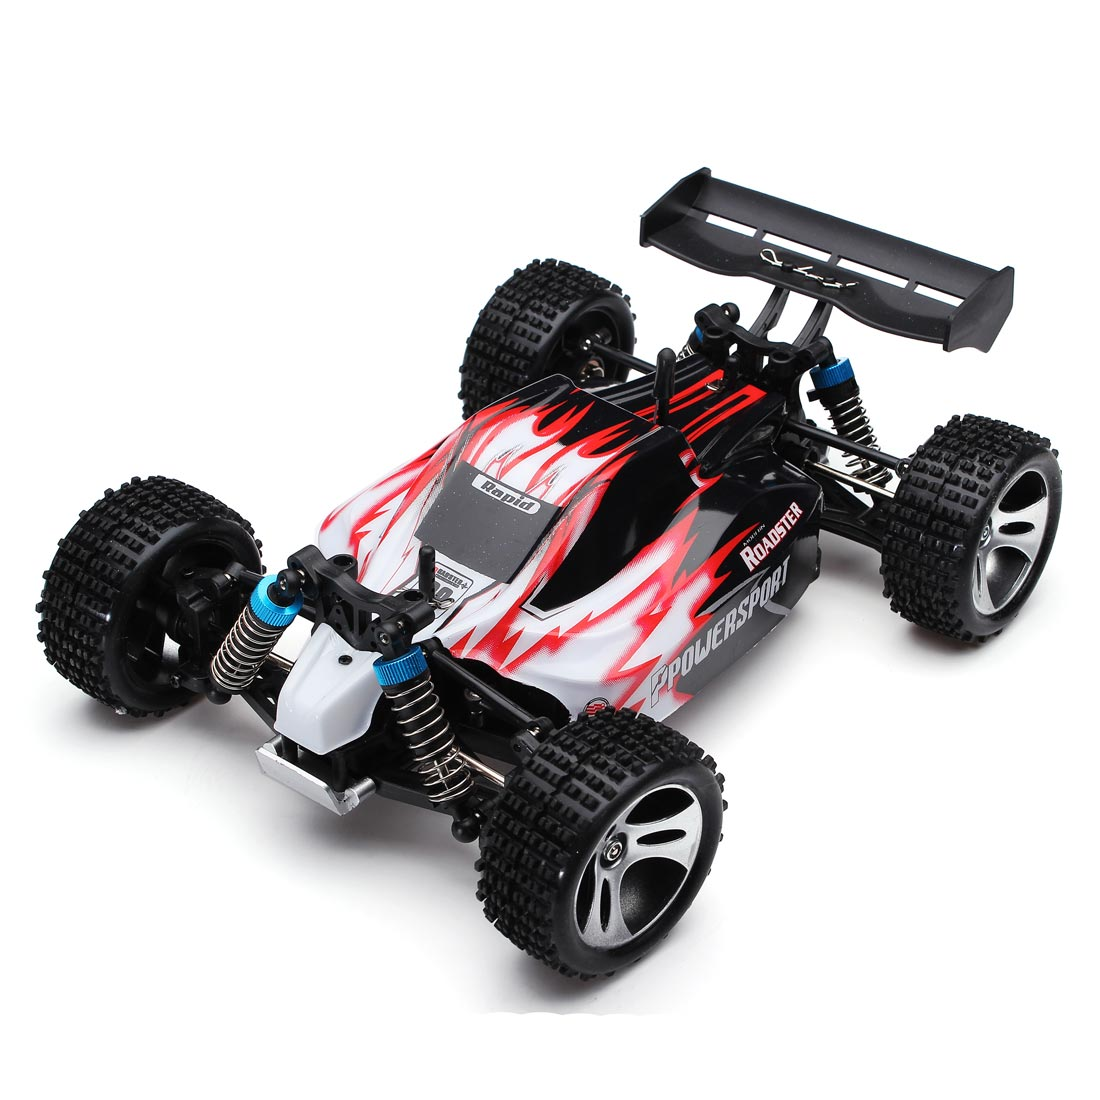 RC Car WLtoys A959 2.4G 1/18 Scale Remote Control Off-road Racing Car High Speed Stunt SUV Toy Gift For Boy RC Mini Car RTR suv jeep rc car toys dirt bike off road vehicle remote control car toy for children xmas gift rock climbing car boy classic toy